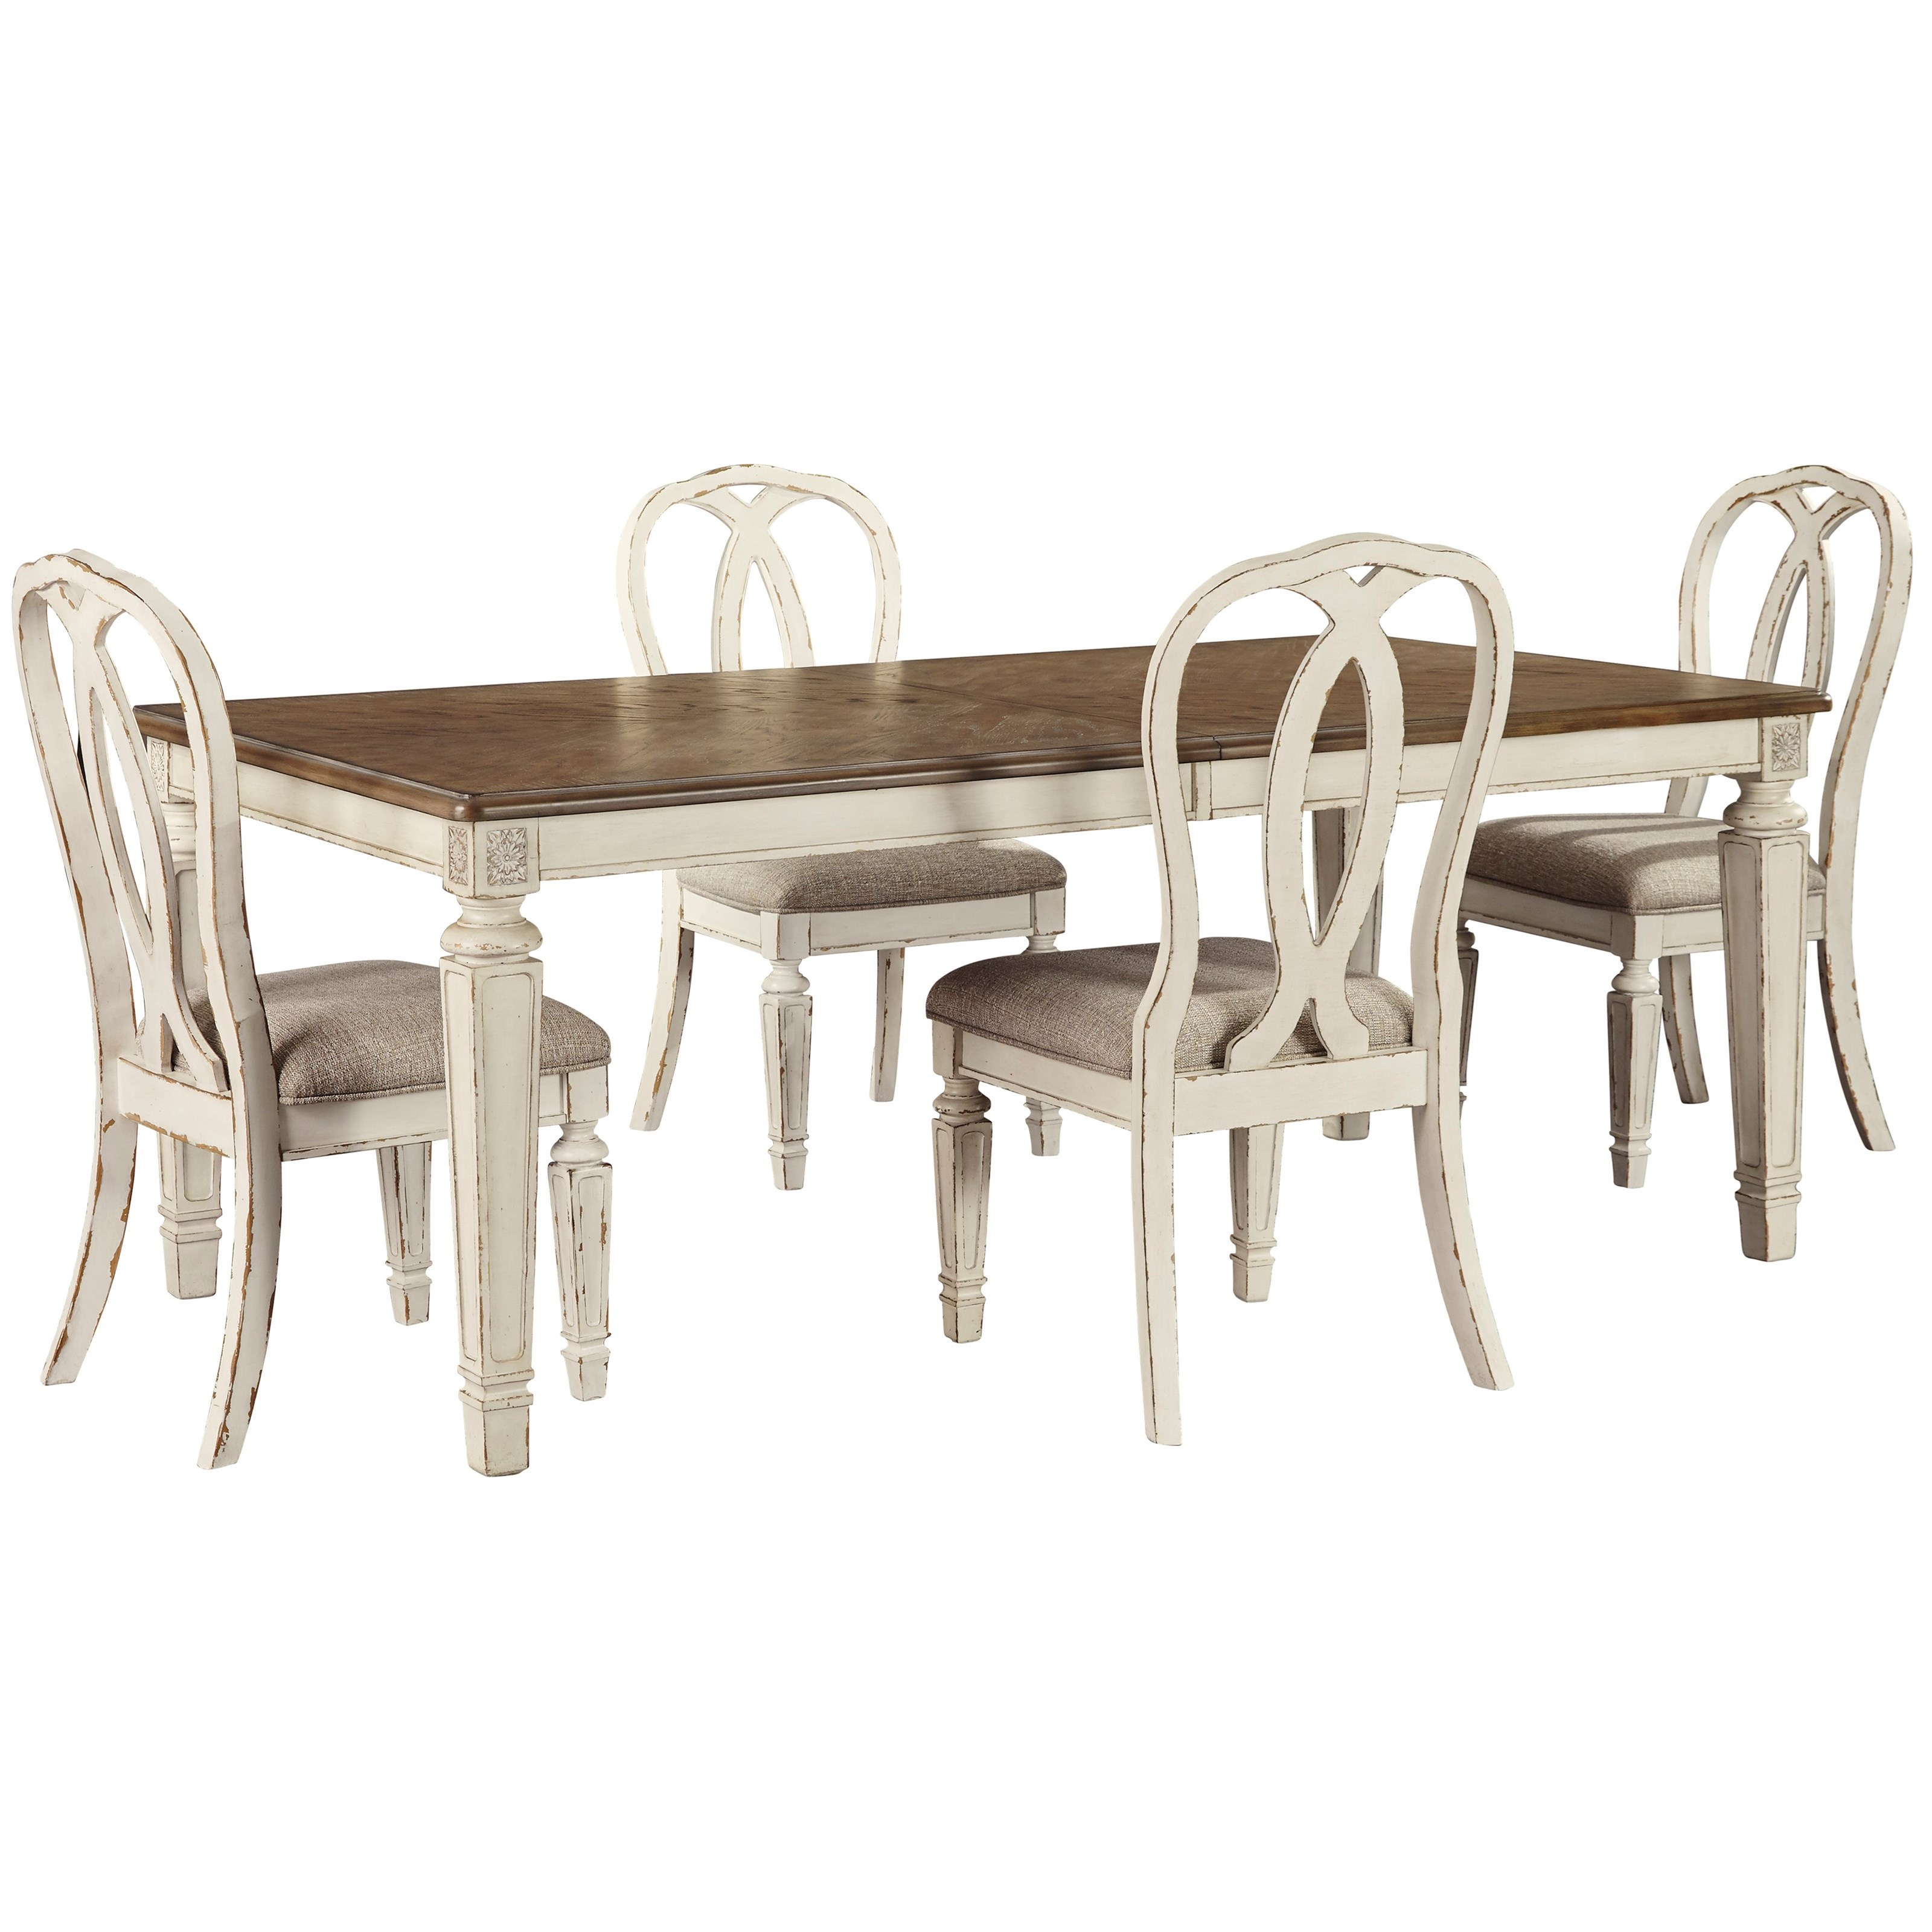 Realyn 5-Piece Rectangular Table and Chair Set by Ashley (Signature Design) at Johnny Janosik